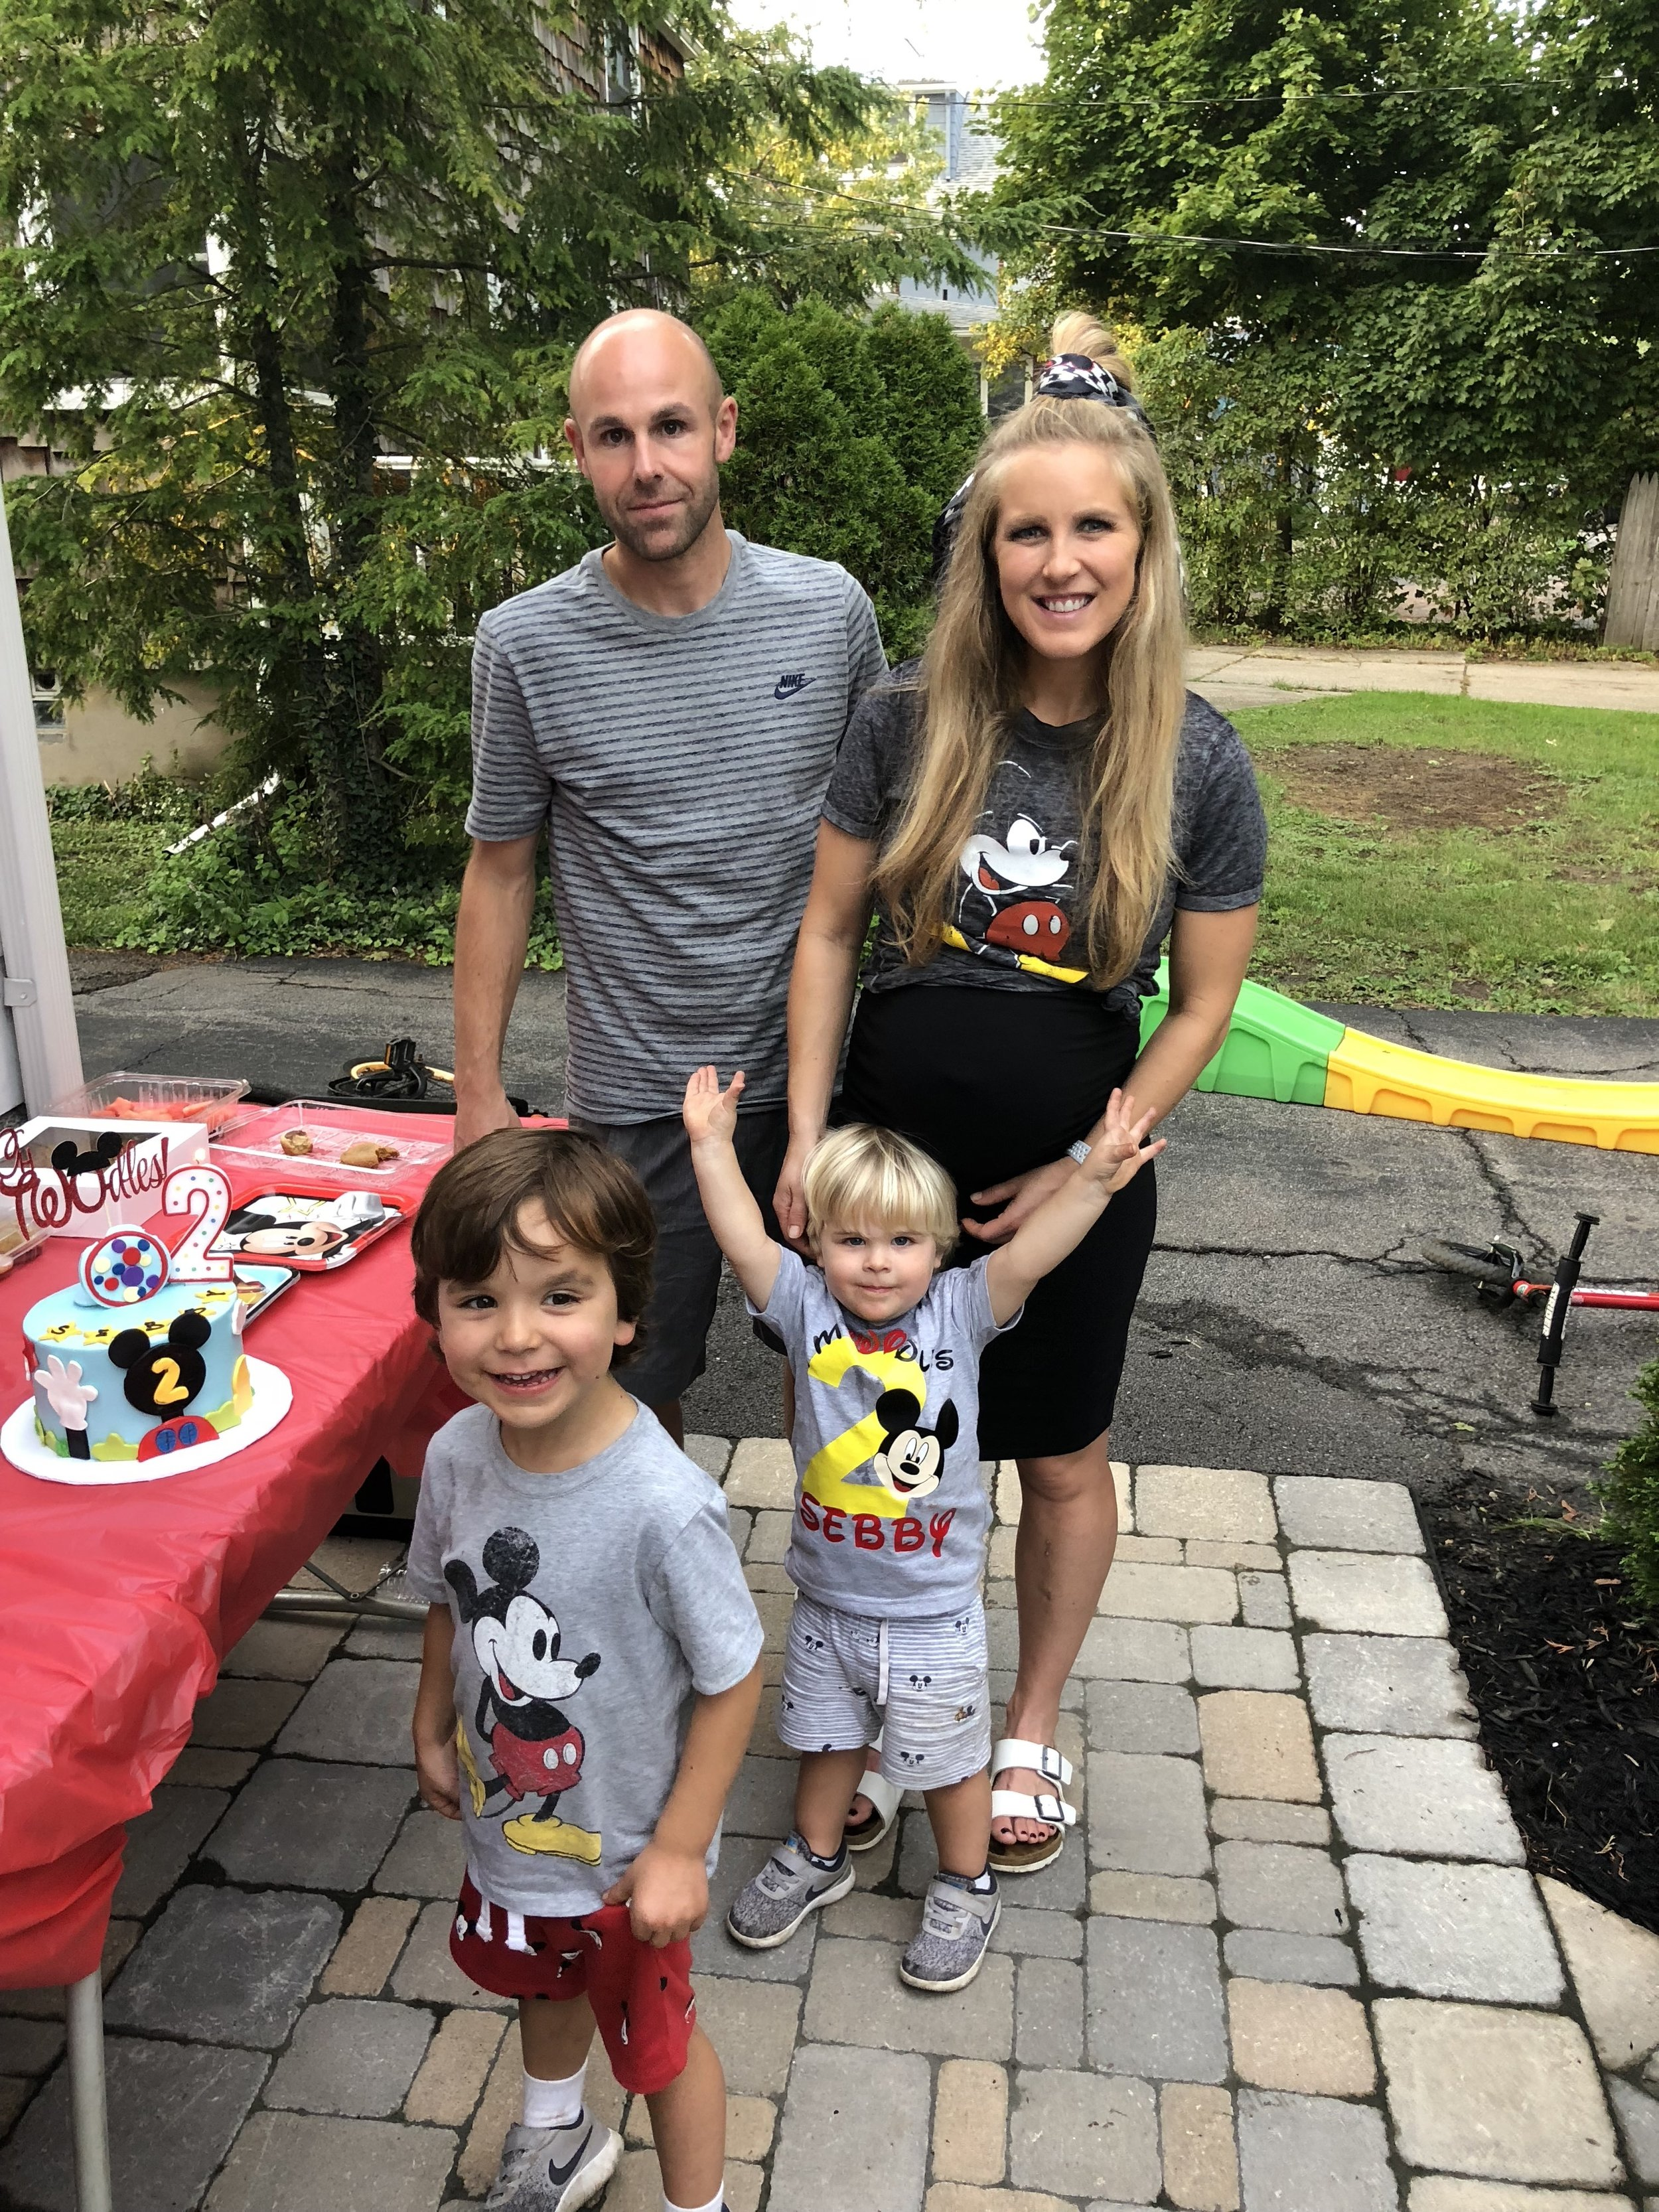 We had a great time at Seb's 2nd Birthday party last night!